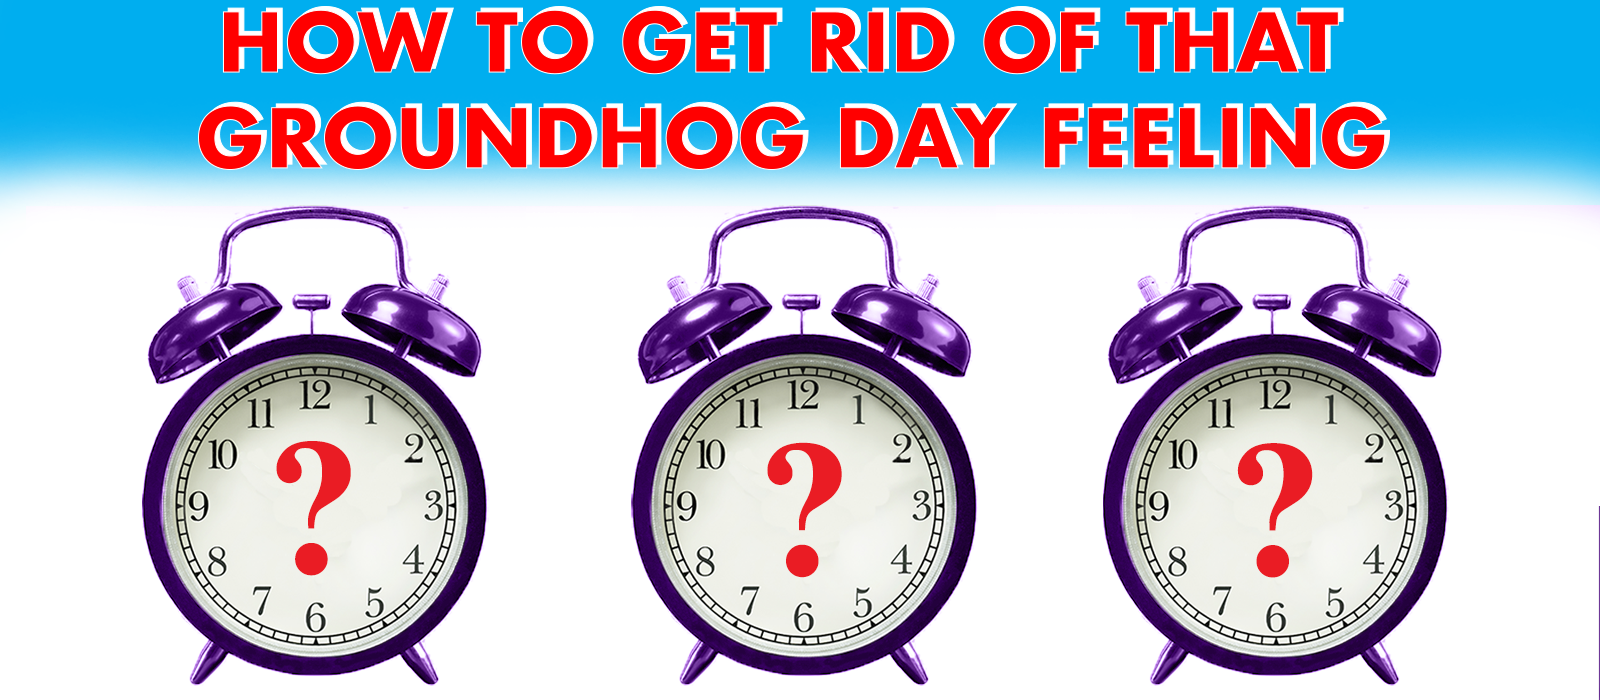 How to Get Rid Of That Groundhog Day Feeling